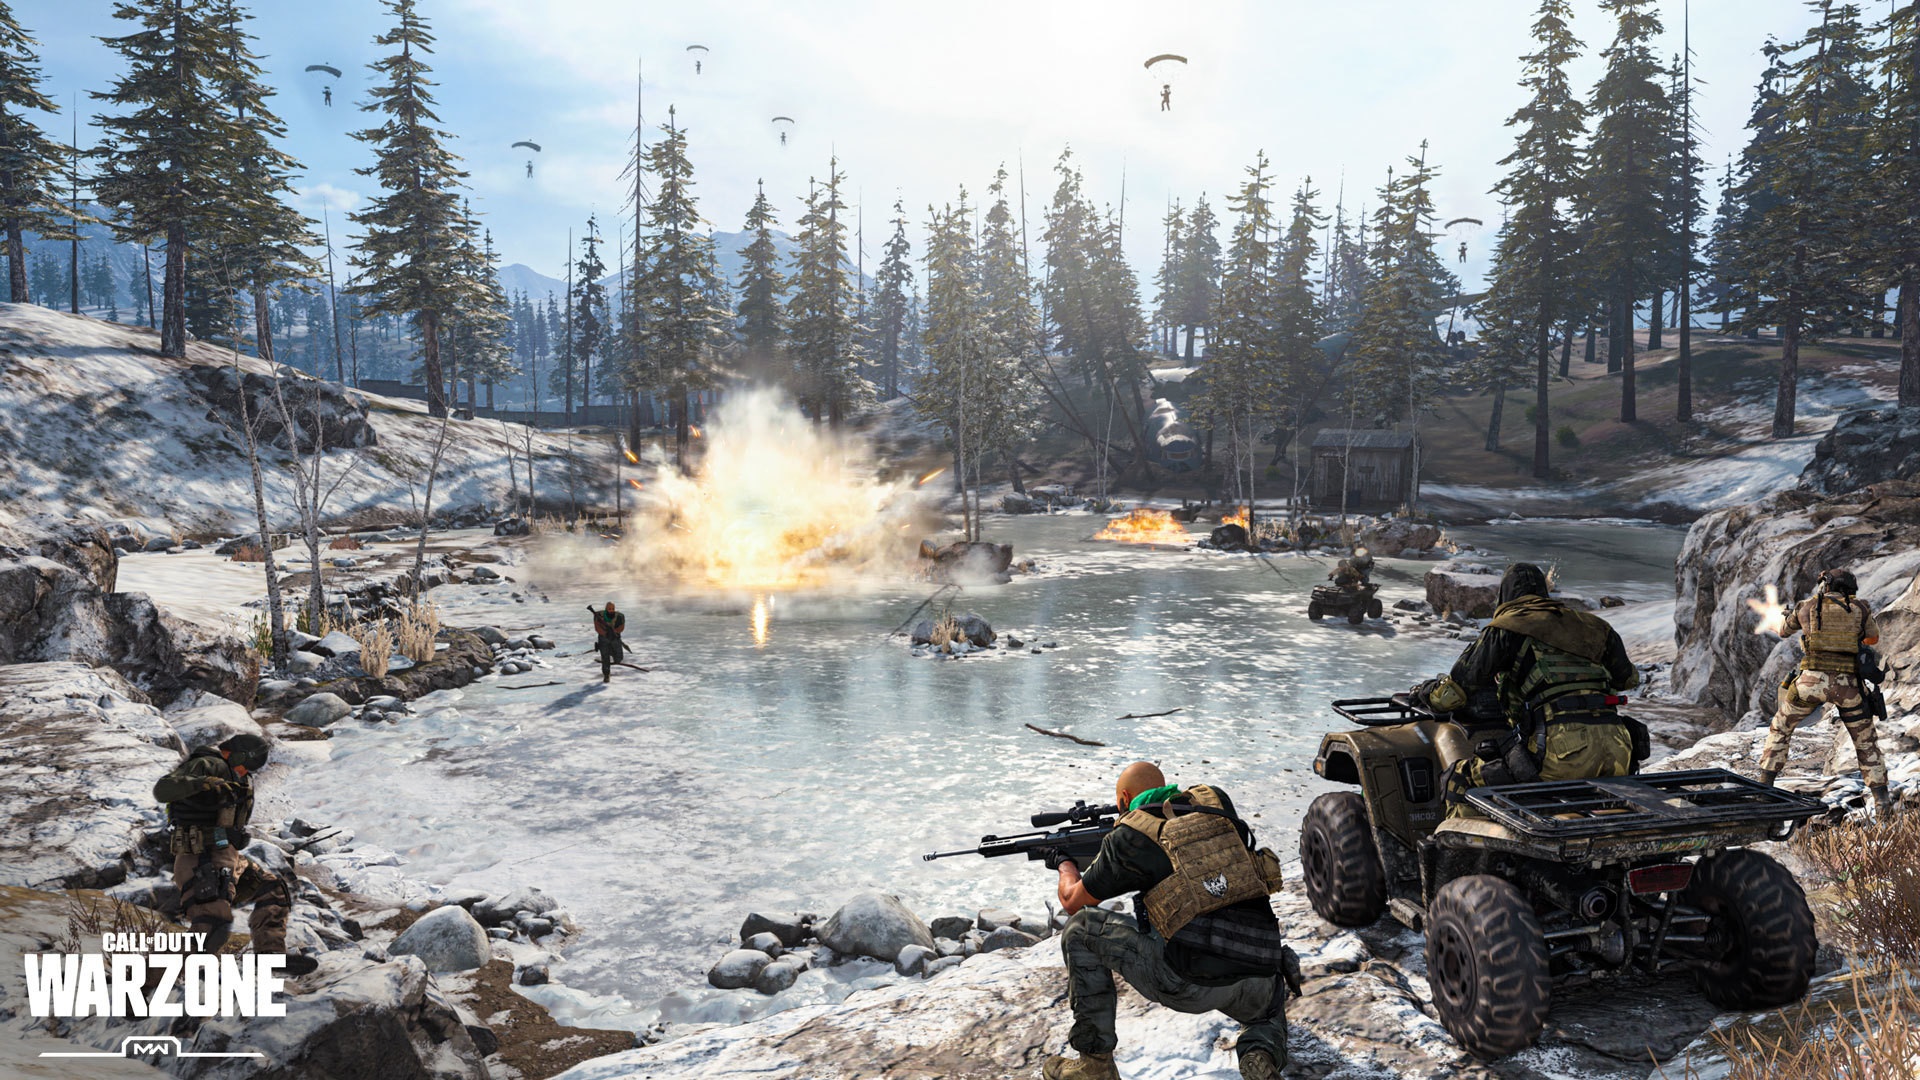 Call of Duty: Warzone gameplay